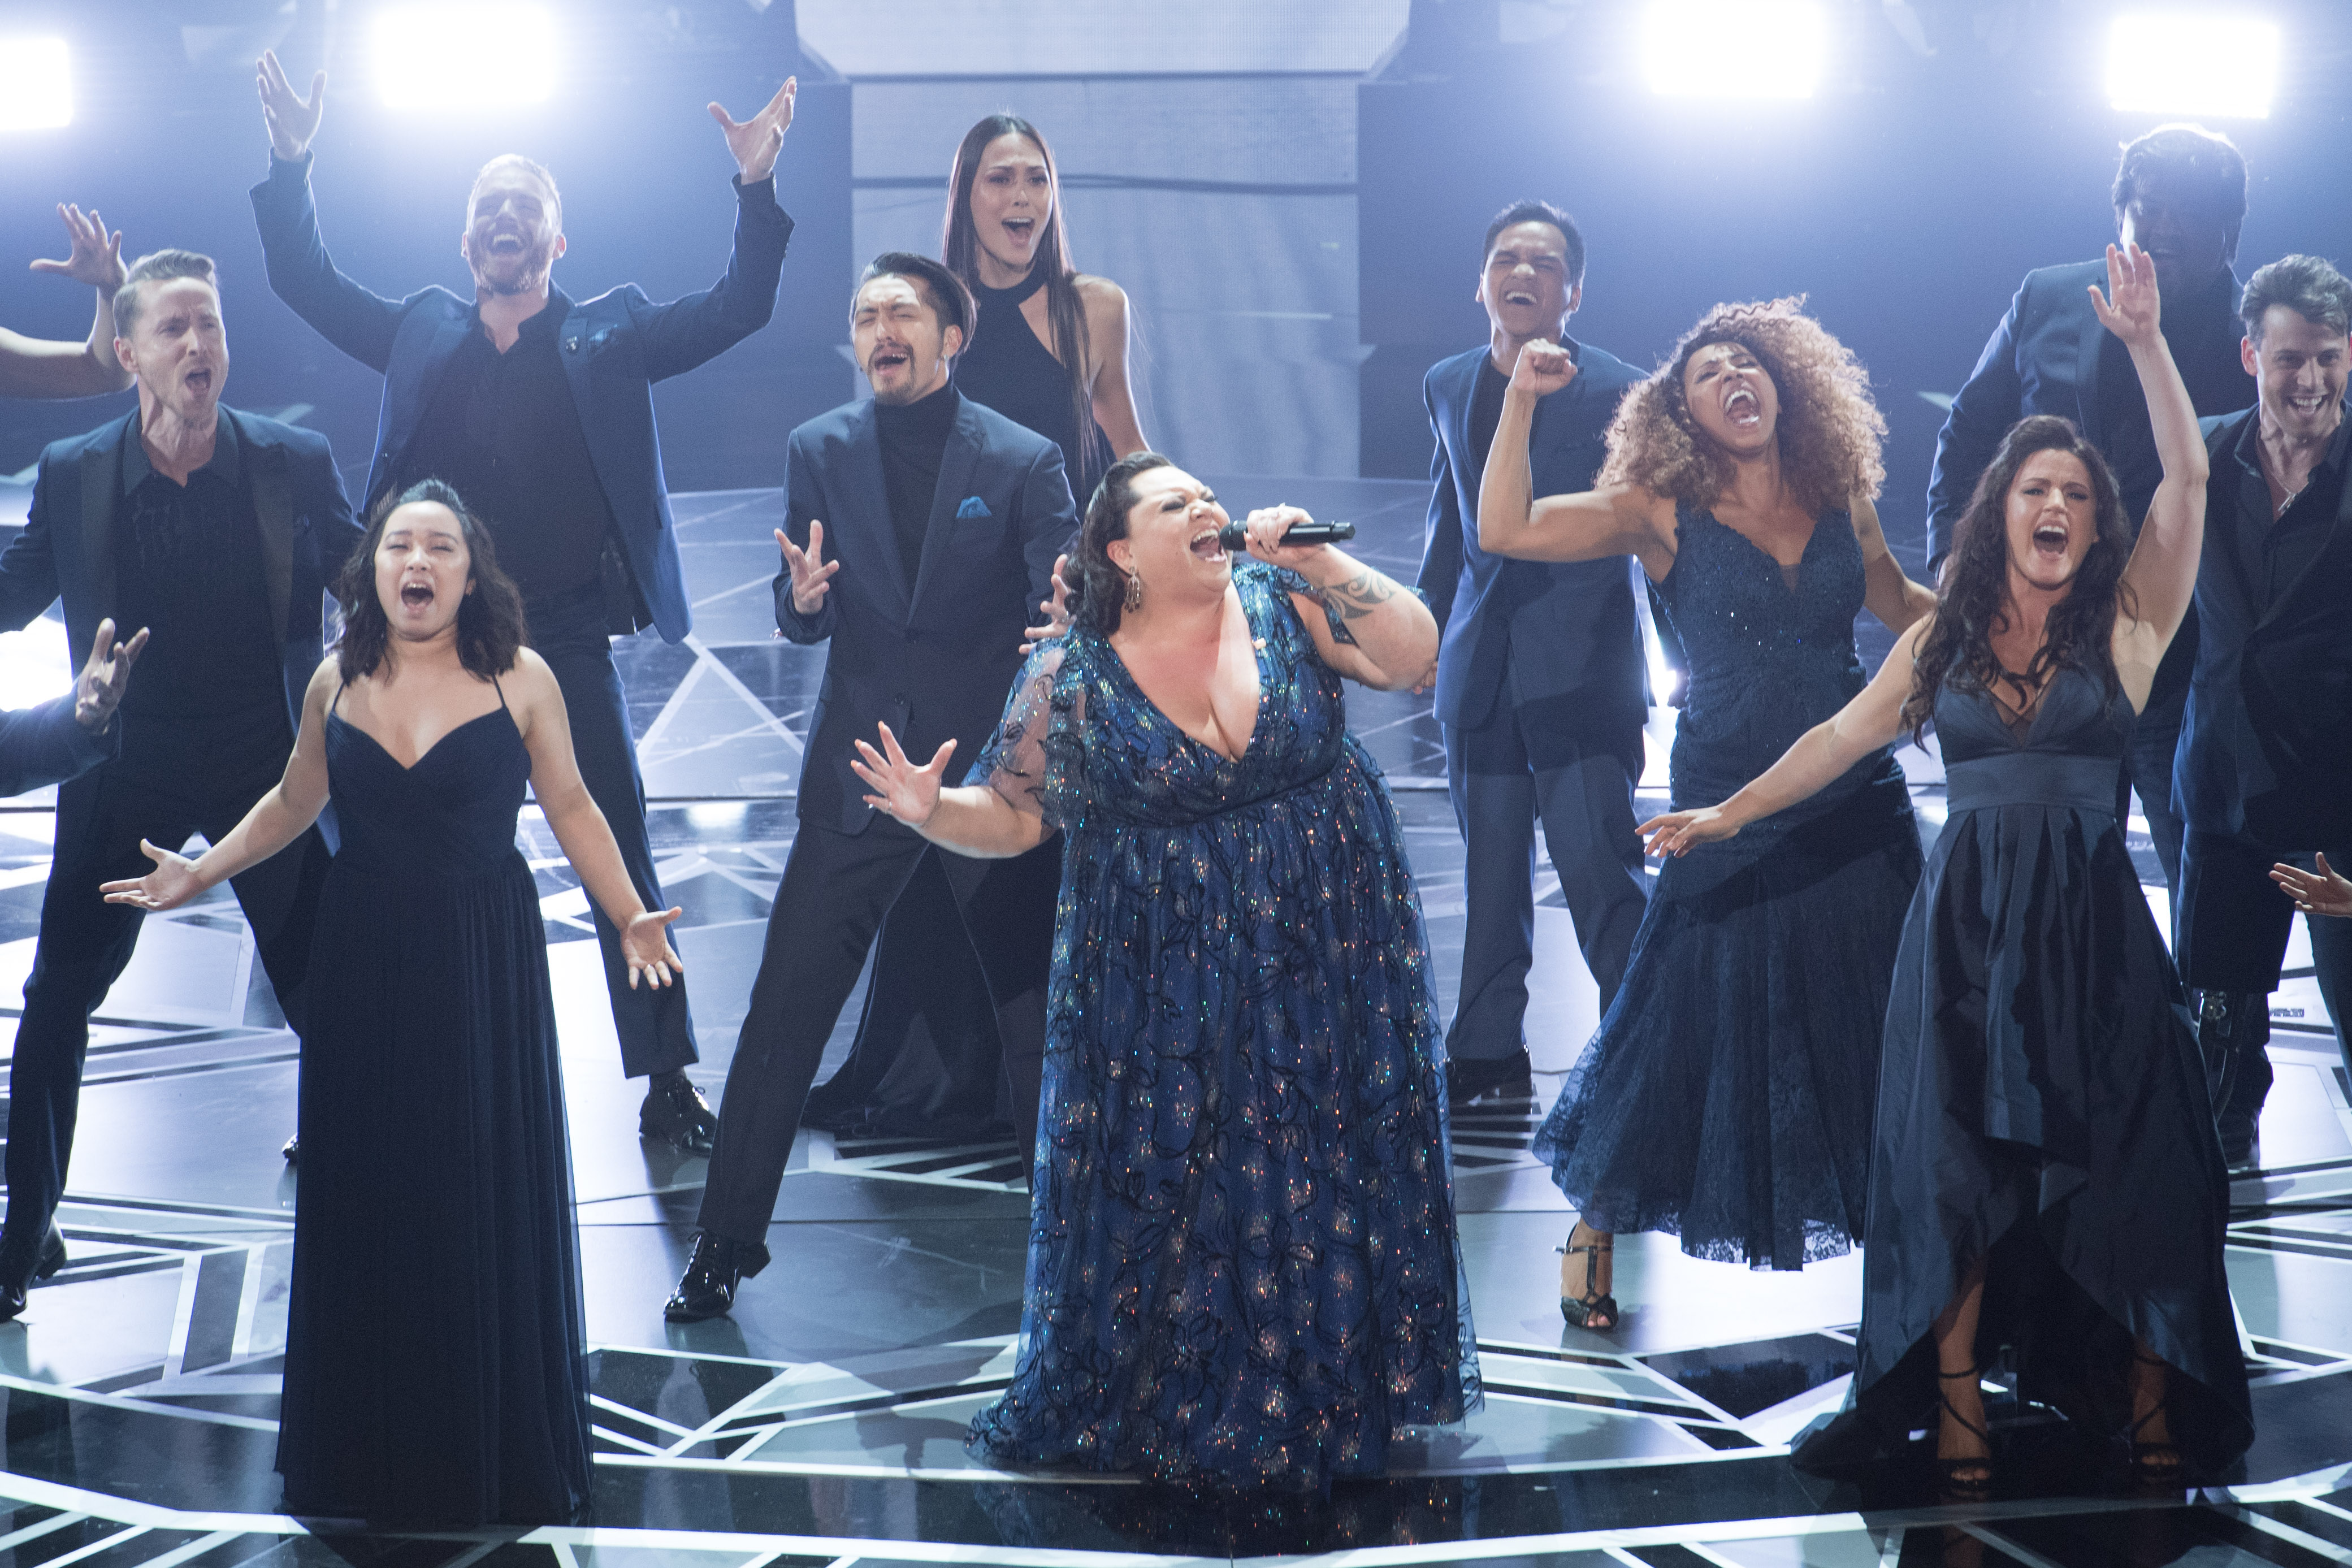 """Keala Settle performs """"This Is Me"""" from The Greatest Showman at the Oscars in 2018, Credit: Supplied."""